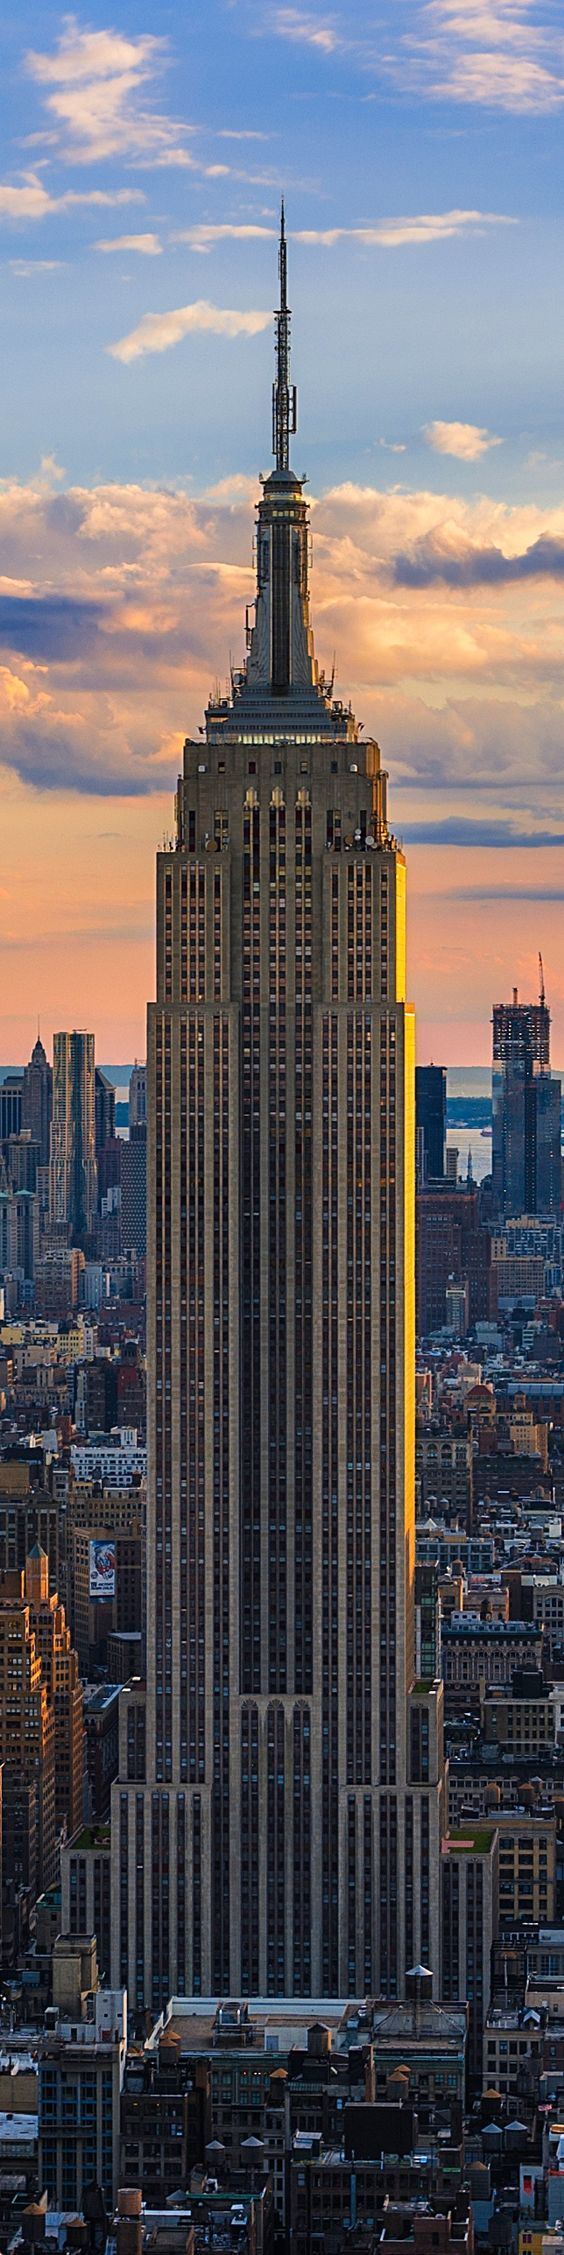 New York City's Empire State Building ///